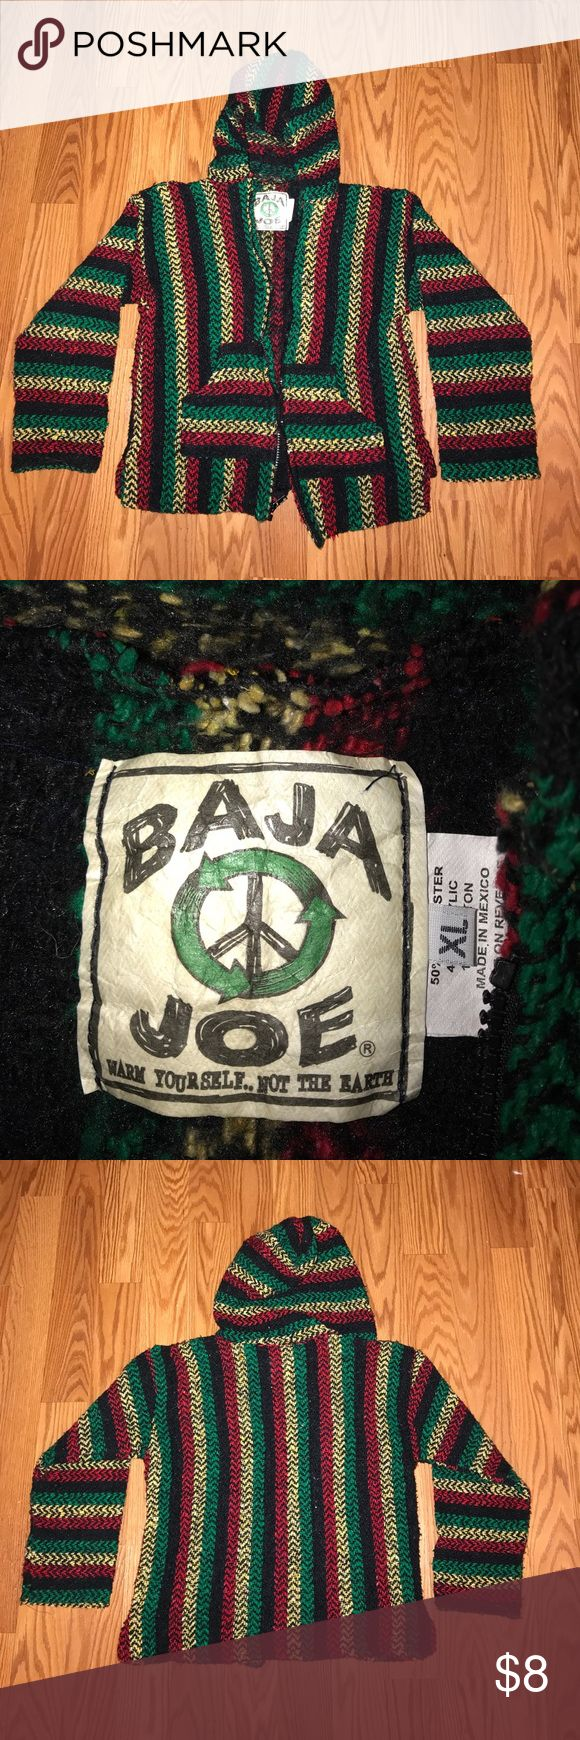 Baja jacket Hooded jacket with front zip. Great pre-owned condition! Jackets & Coats